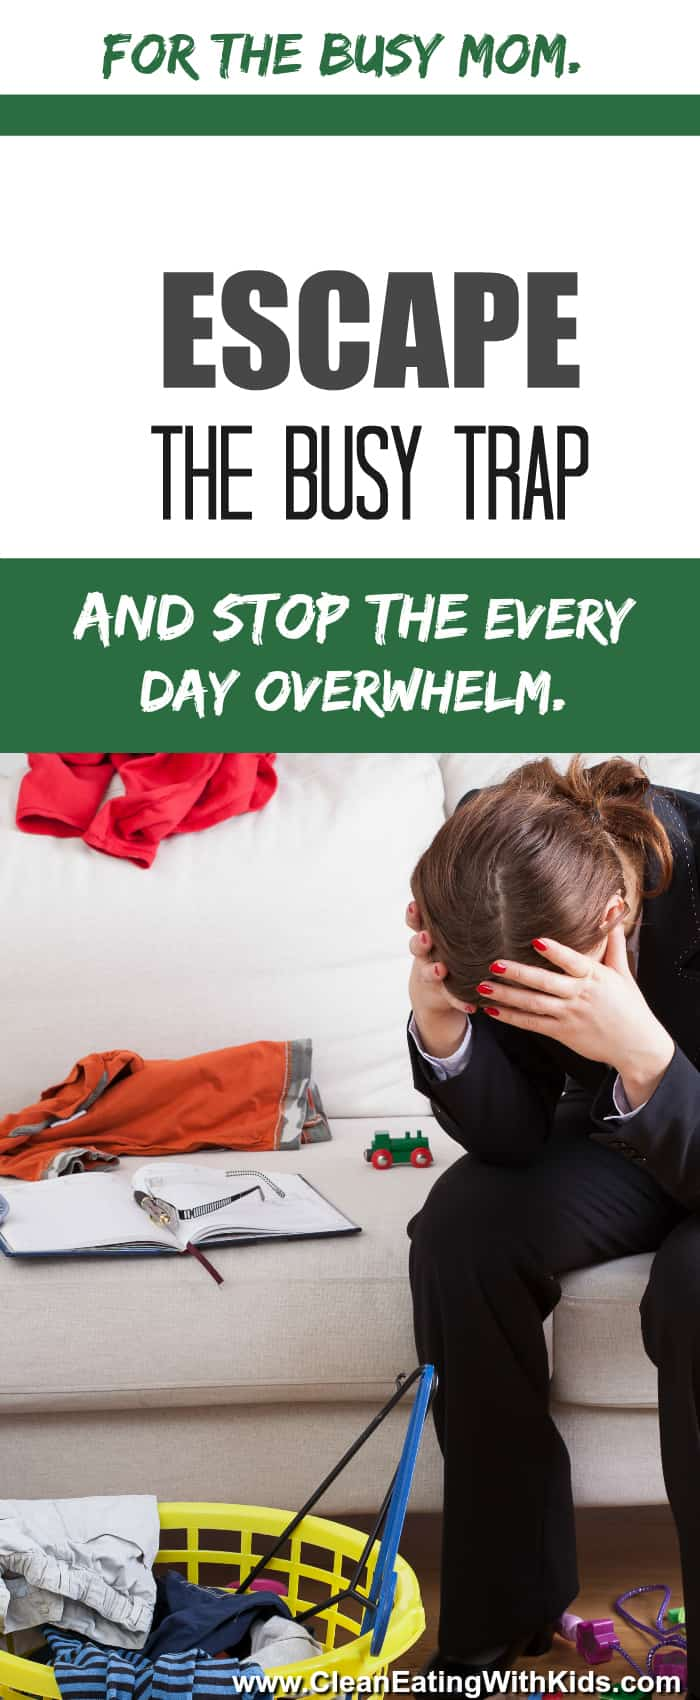 How to Stop being busy for the sake of being busy and actually get on top of the important things.